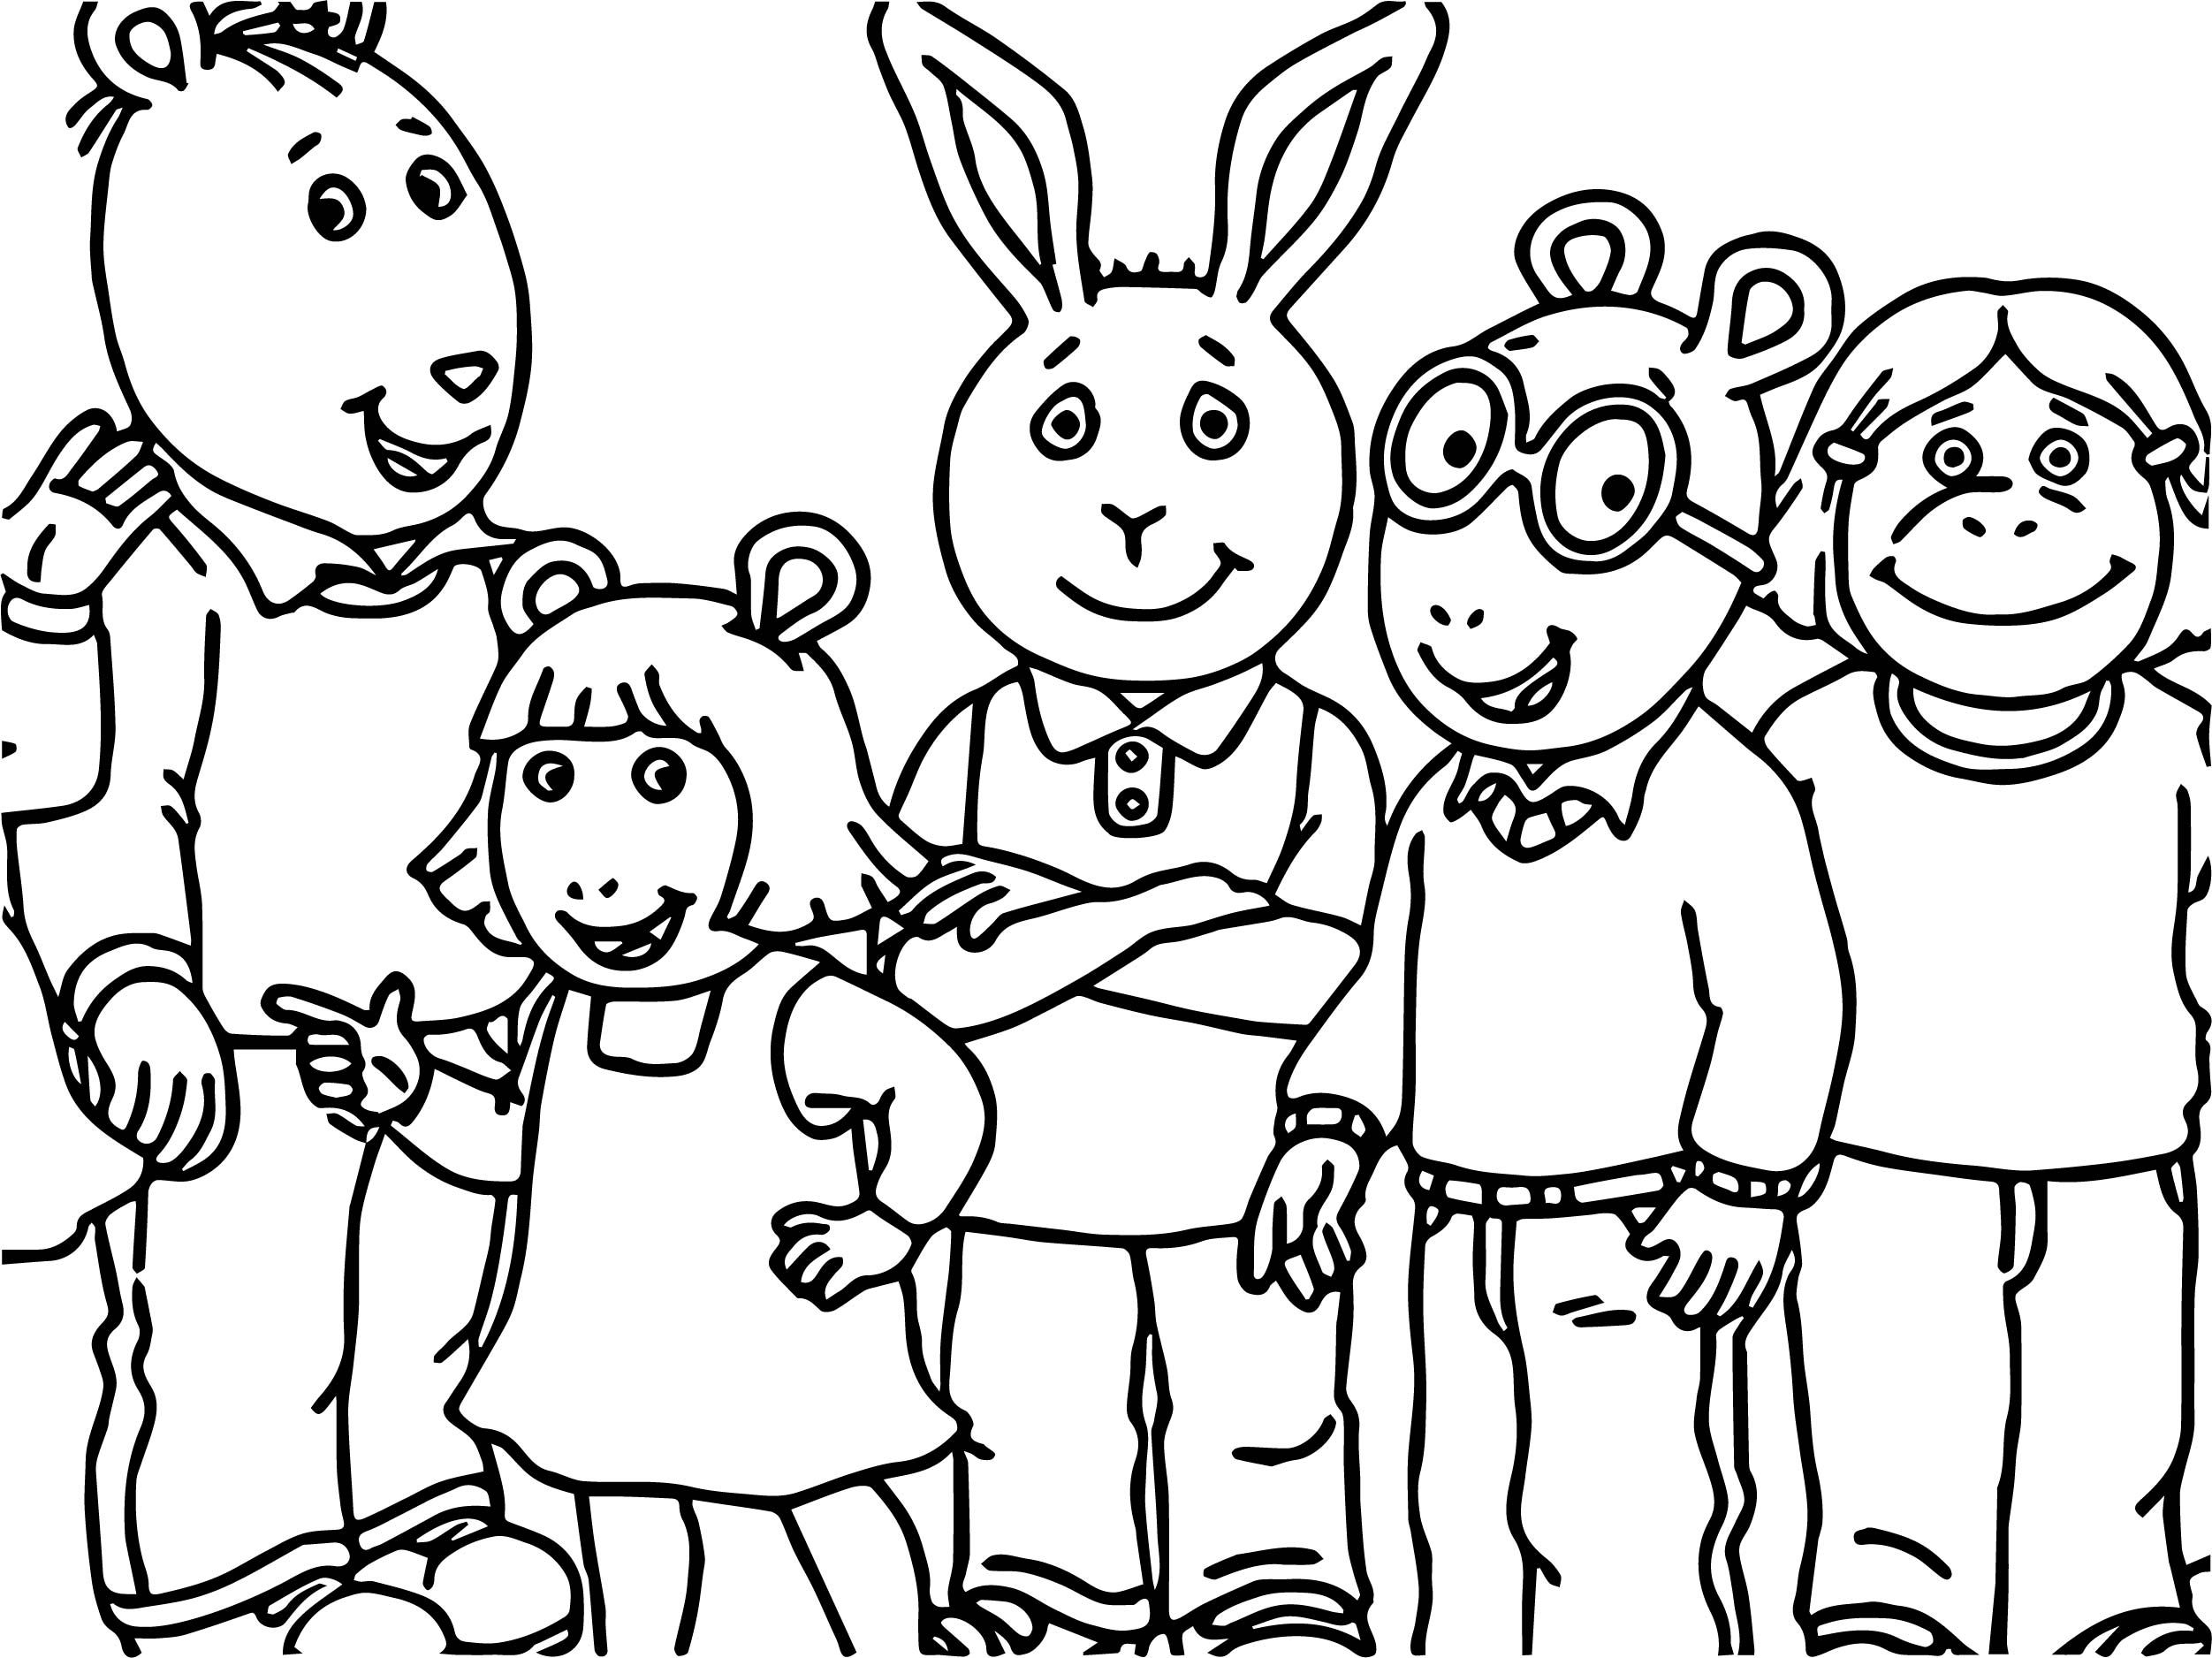 Arthur And Friends Coloring Pages Cute Coloring Pages Coloring Sheets For Kids Cartoon Coloring Pages